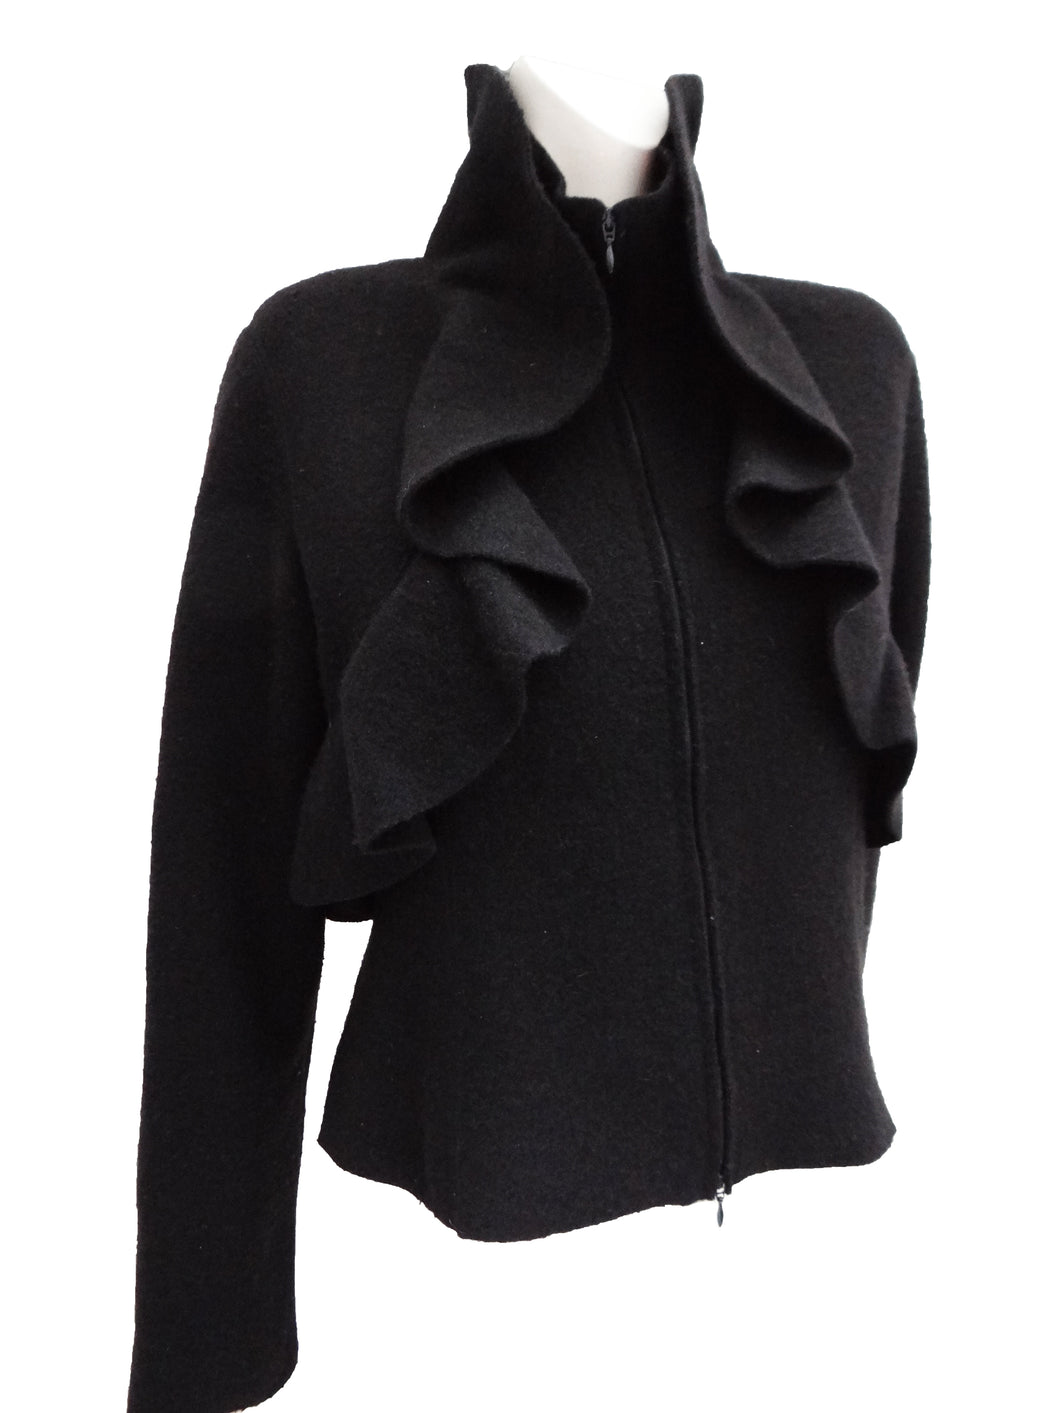 Valentino Jacket with Bolero Frill, in Black Wool, UK12-14